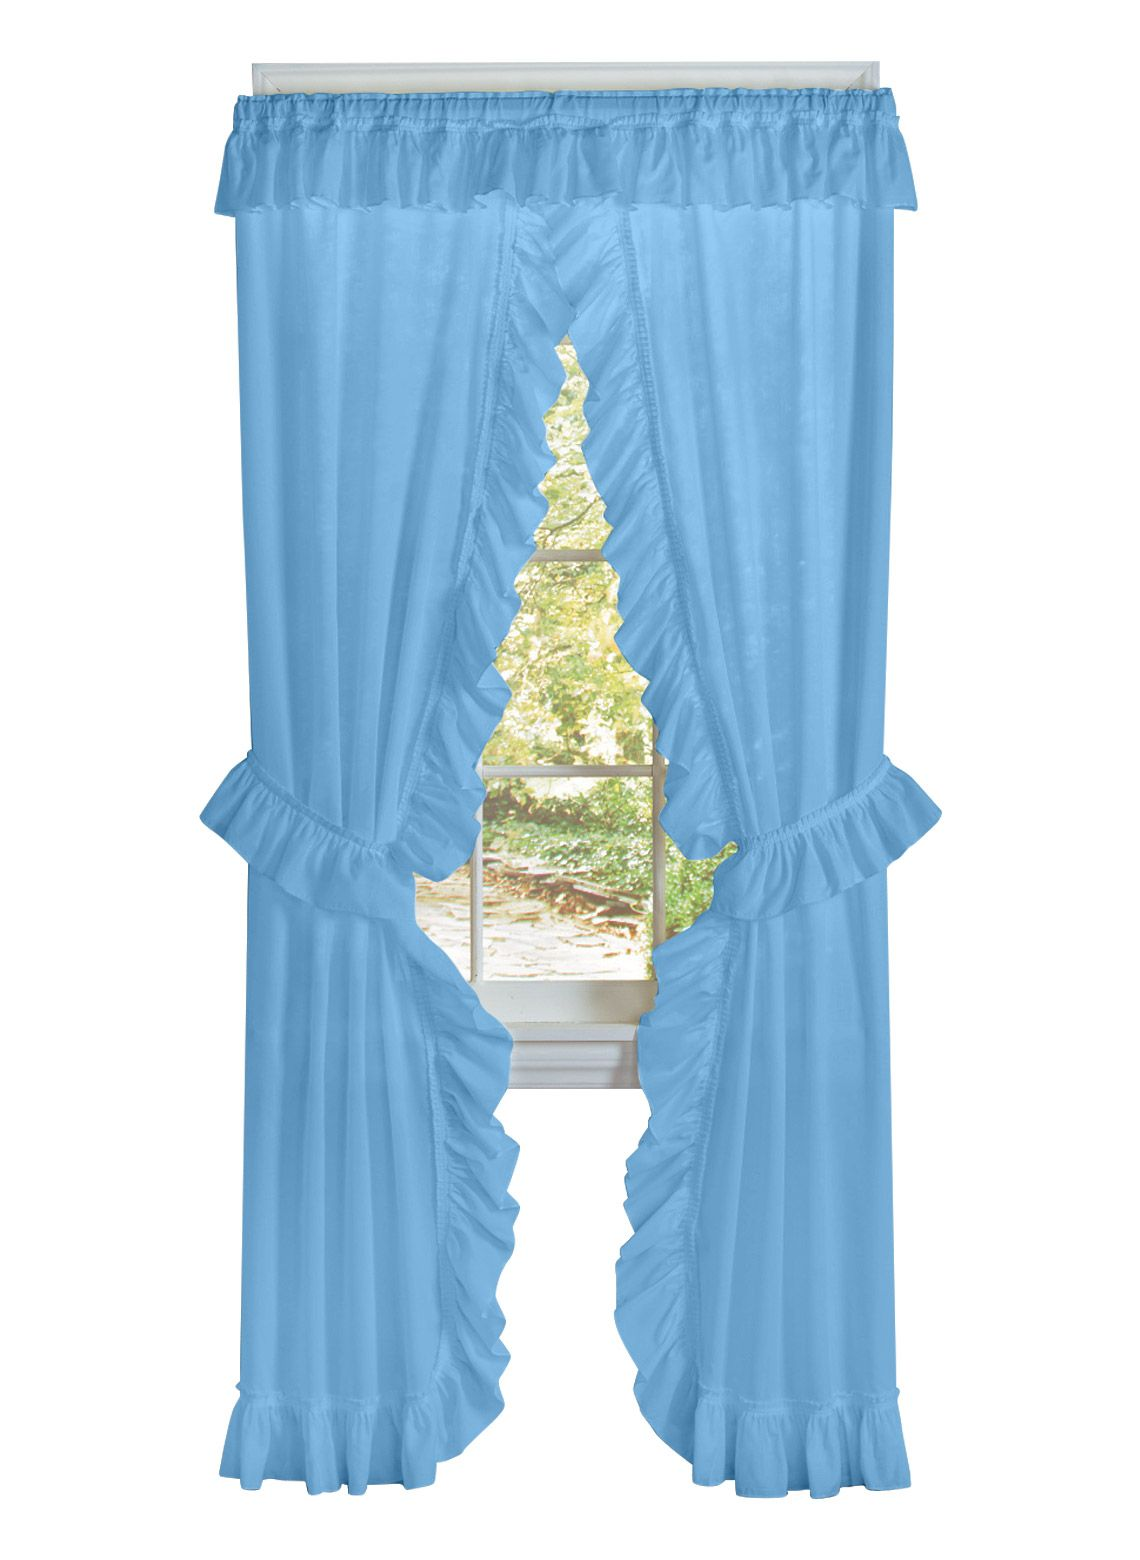 Brighten Any Room With These Classic Ruffled Tie Back Curtains